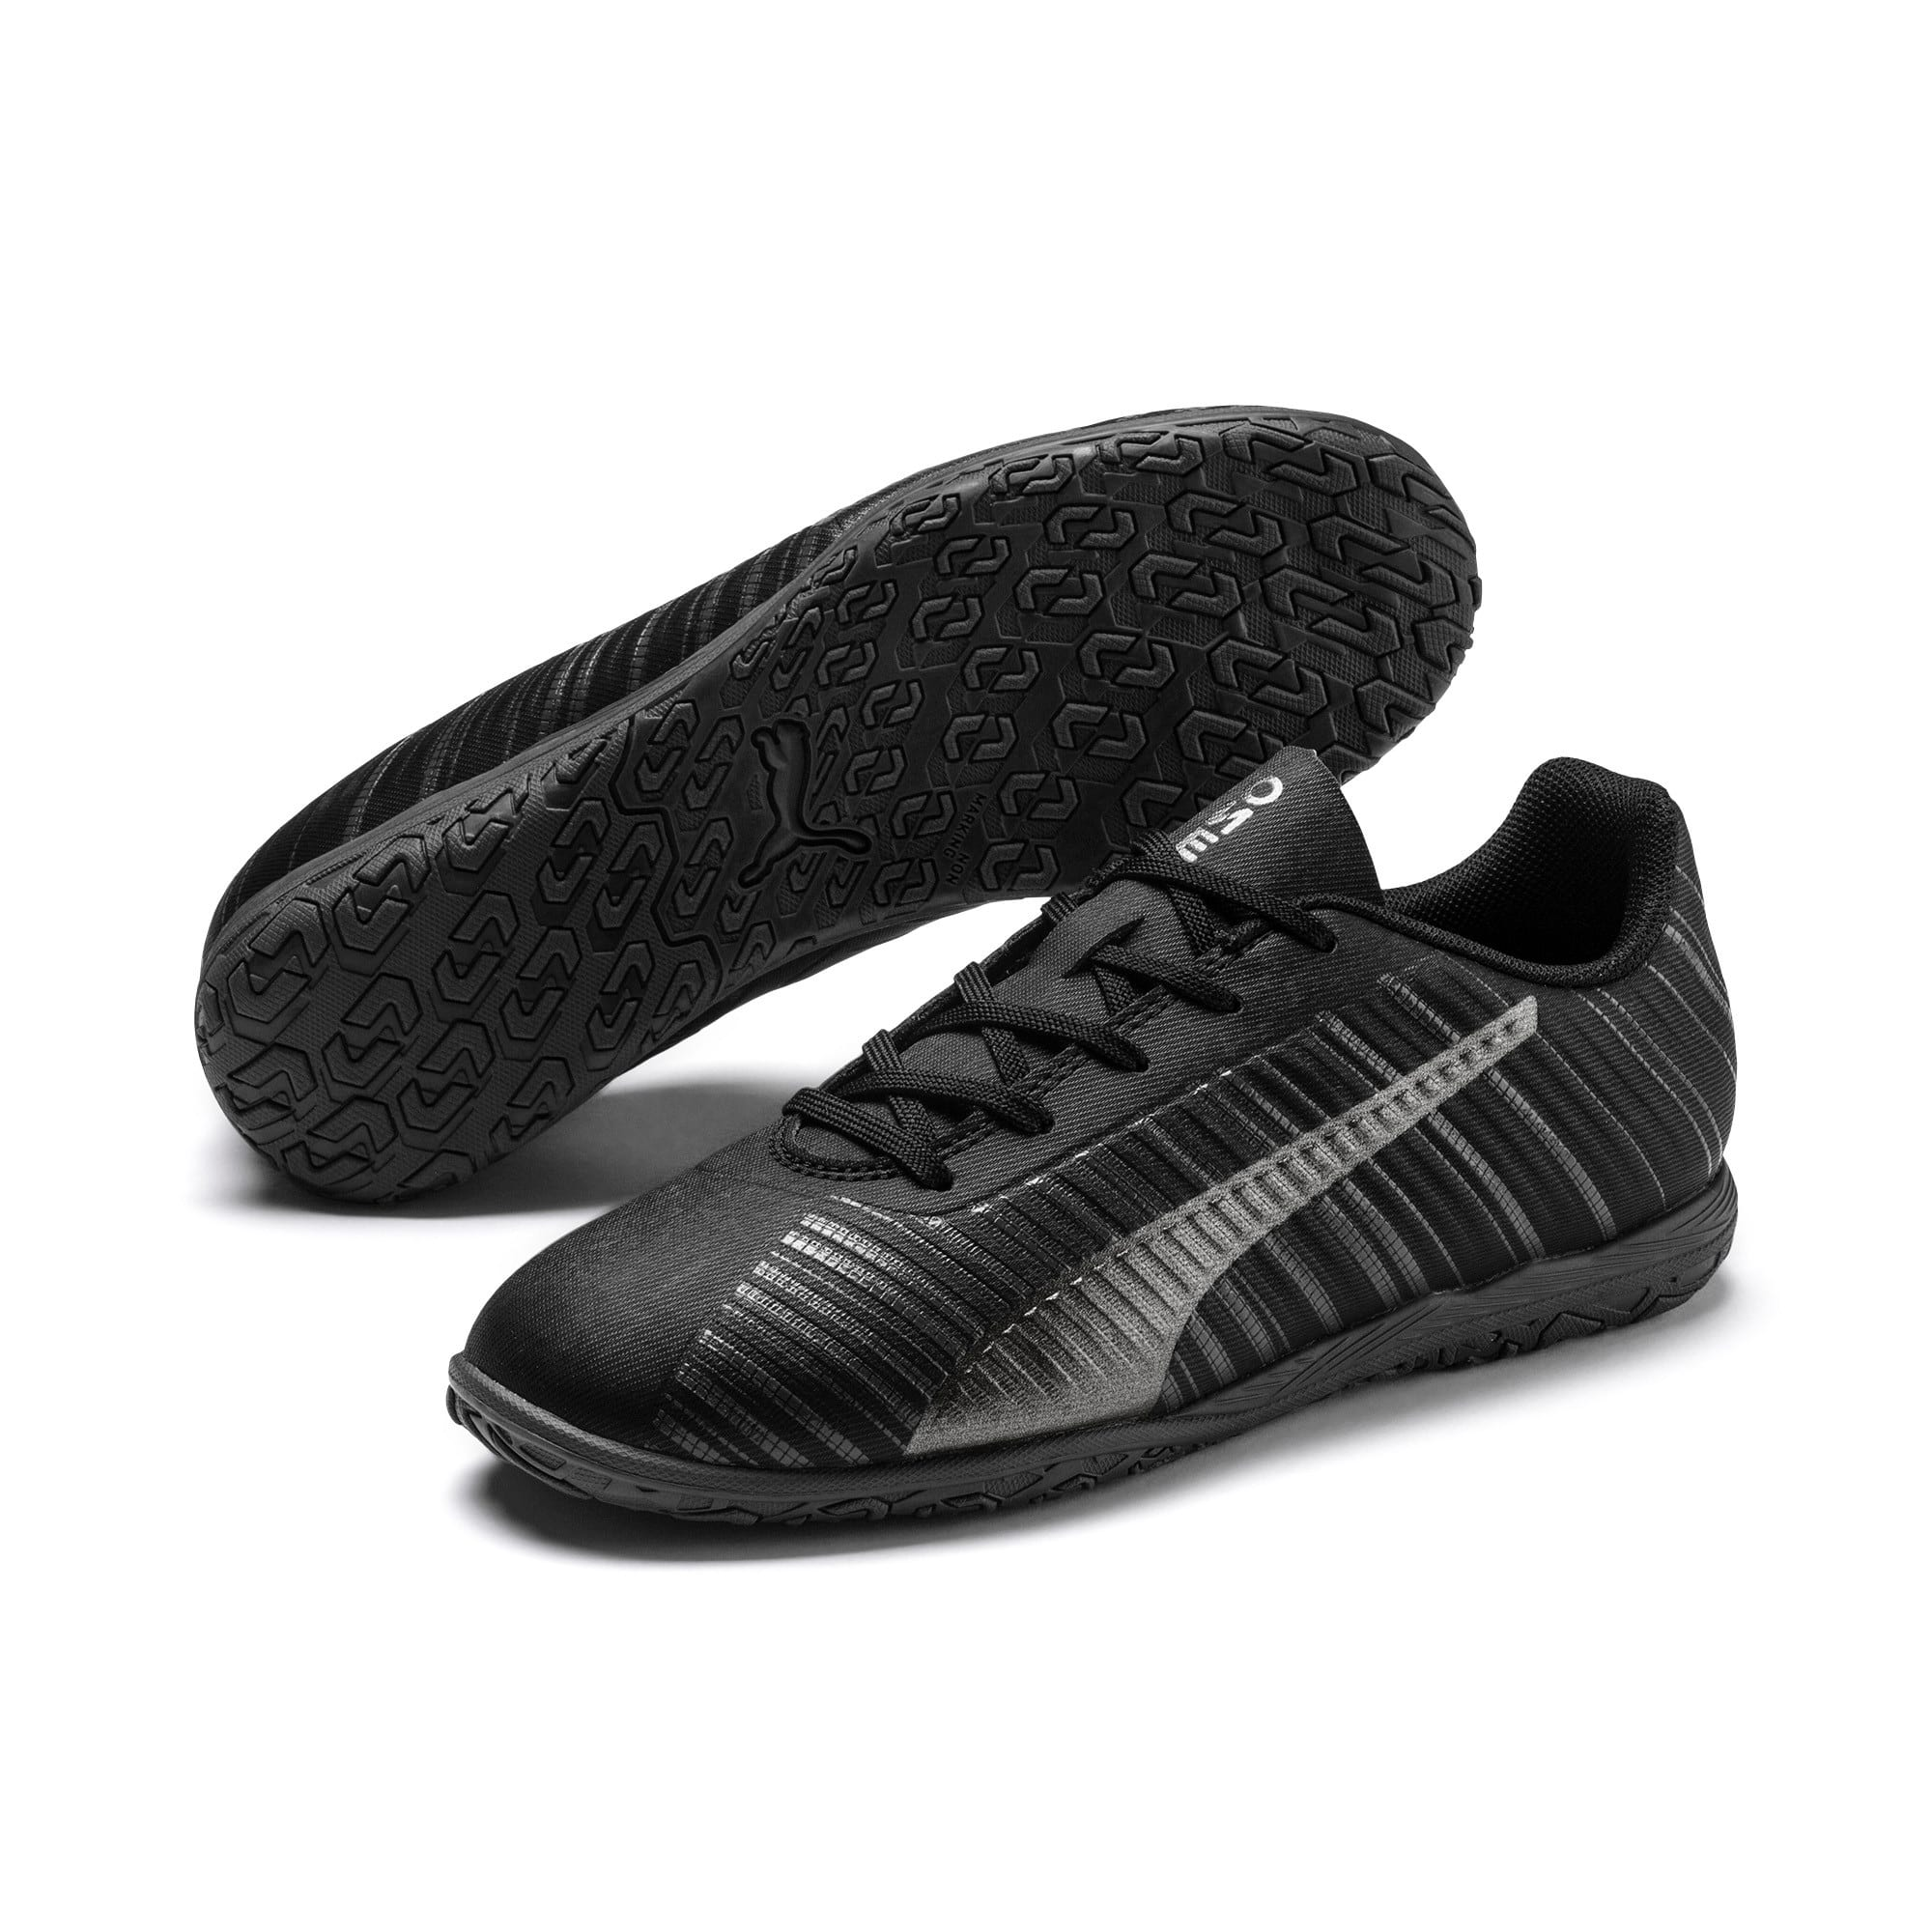 Thumbnail 2 of PUMA ONE 5.4 IT Youth Fußballschuhe, Black-Black-Puma Aged Silver, medium